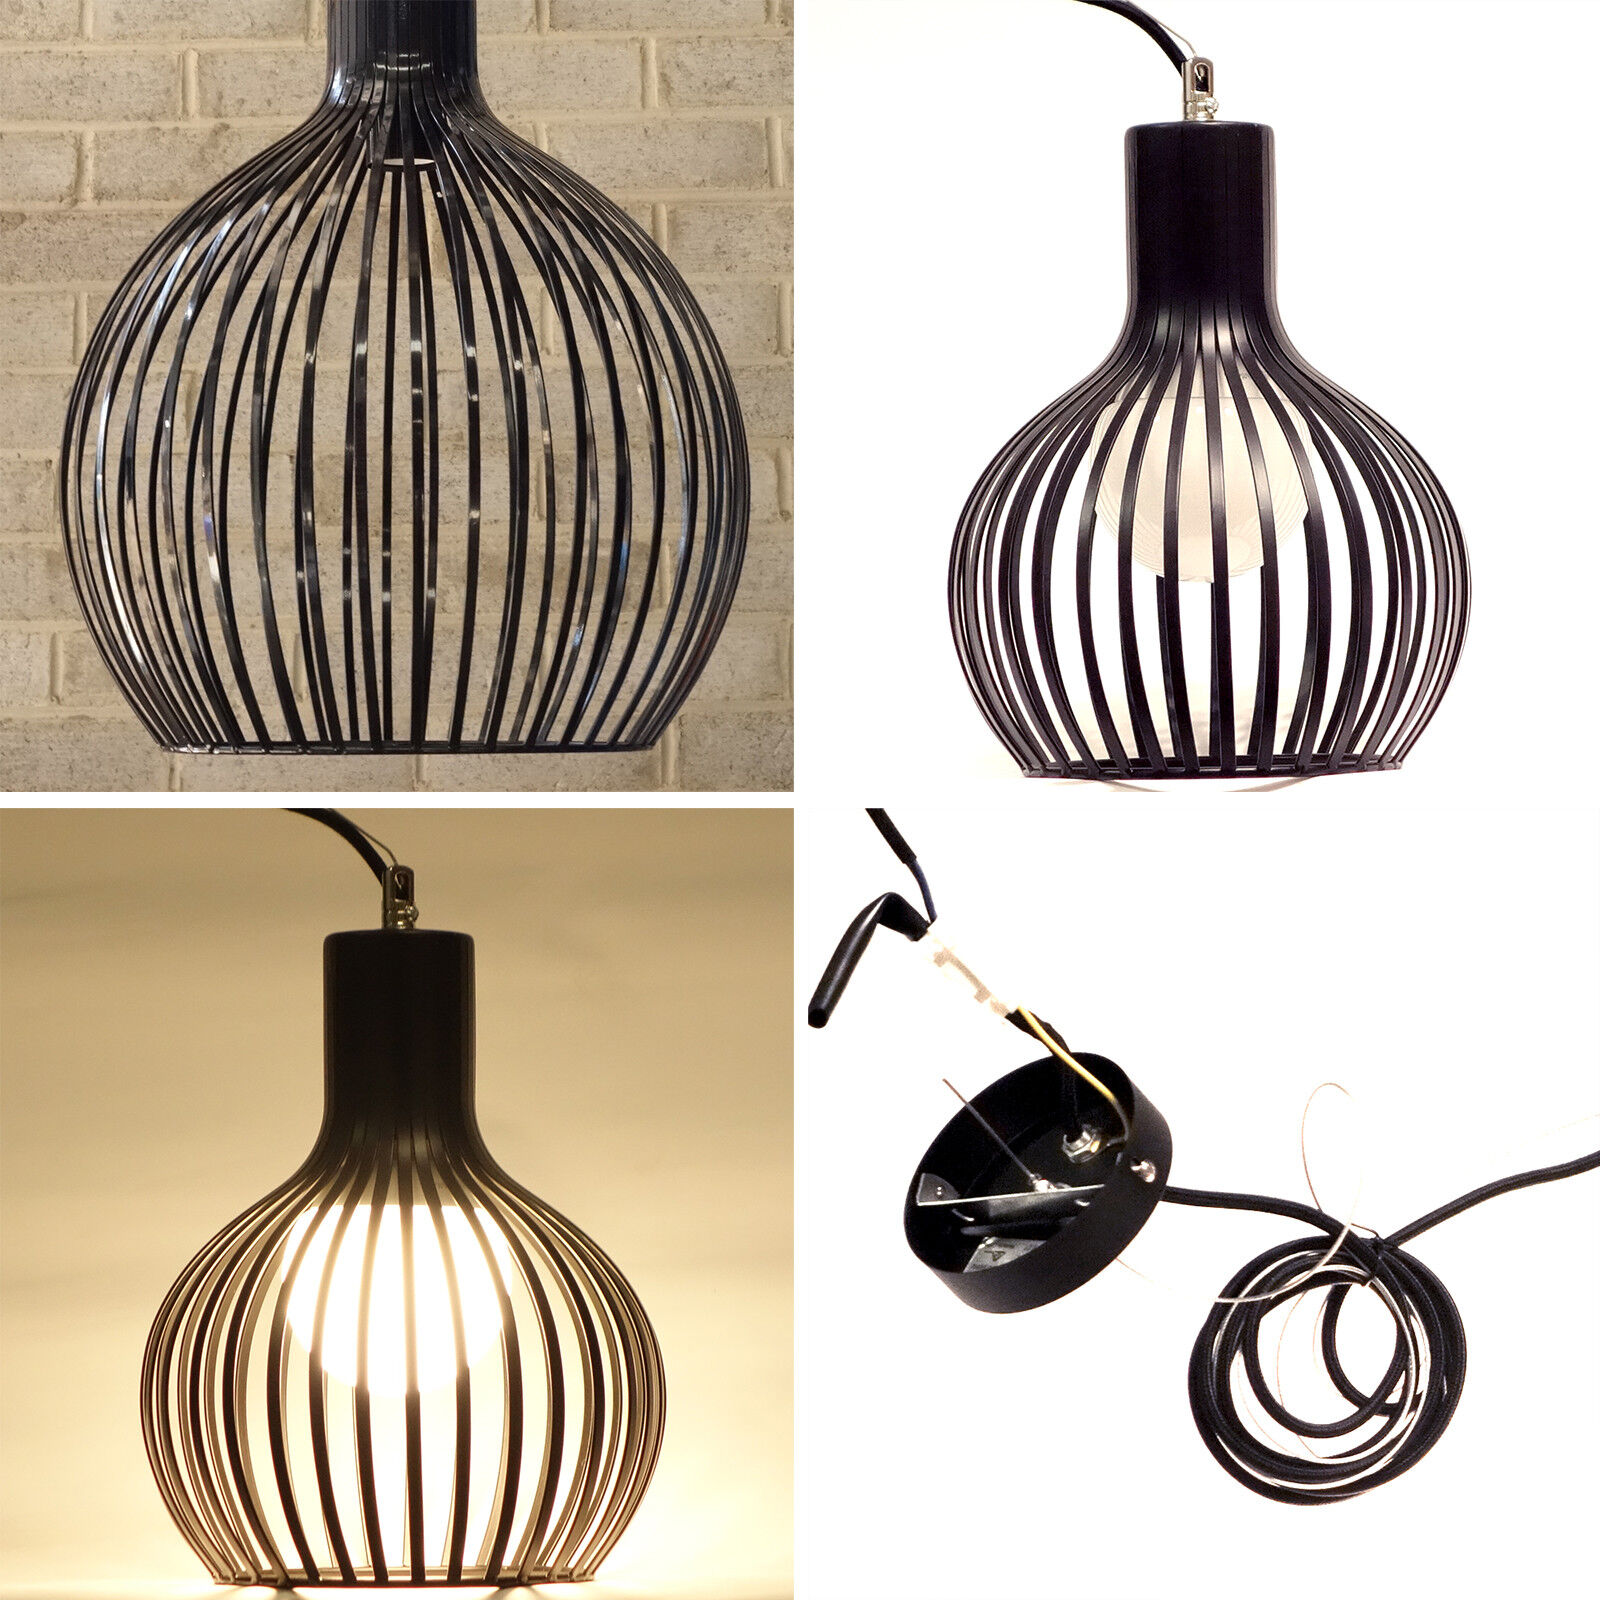 Sphere Style Black Wires Cage Light Small Large Pendant Lighting Ceiling Light Ebay